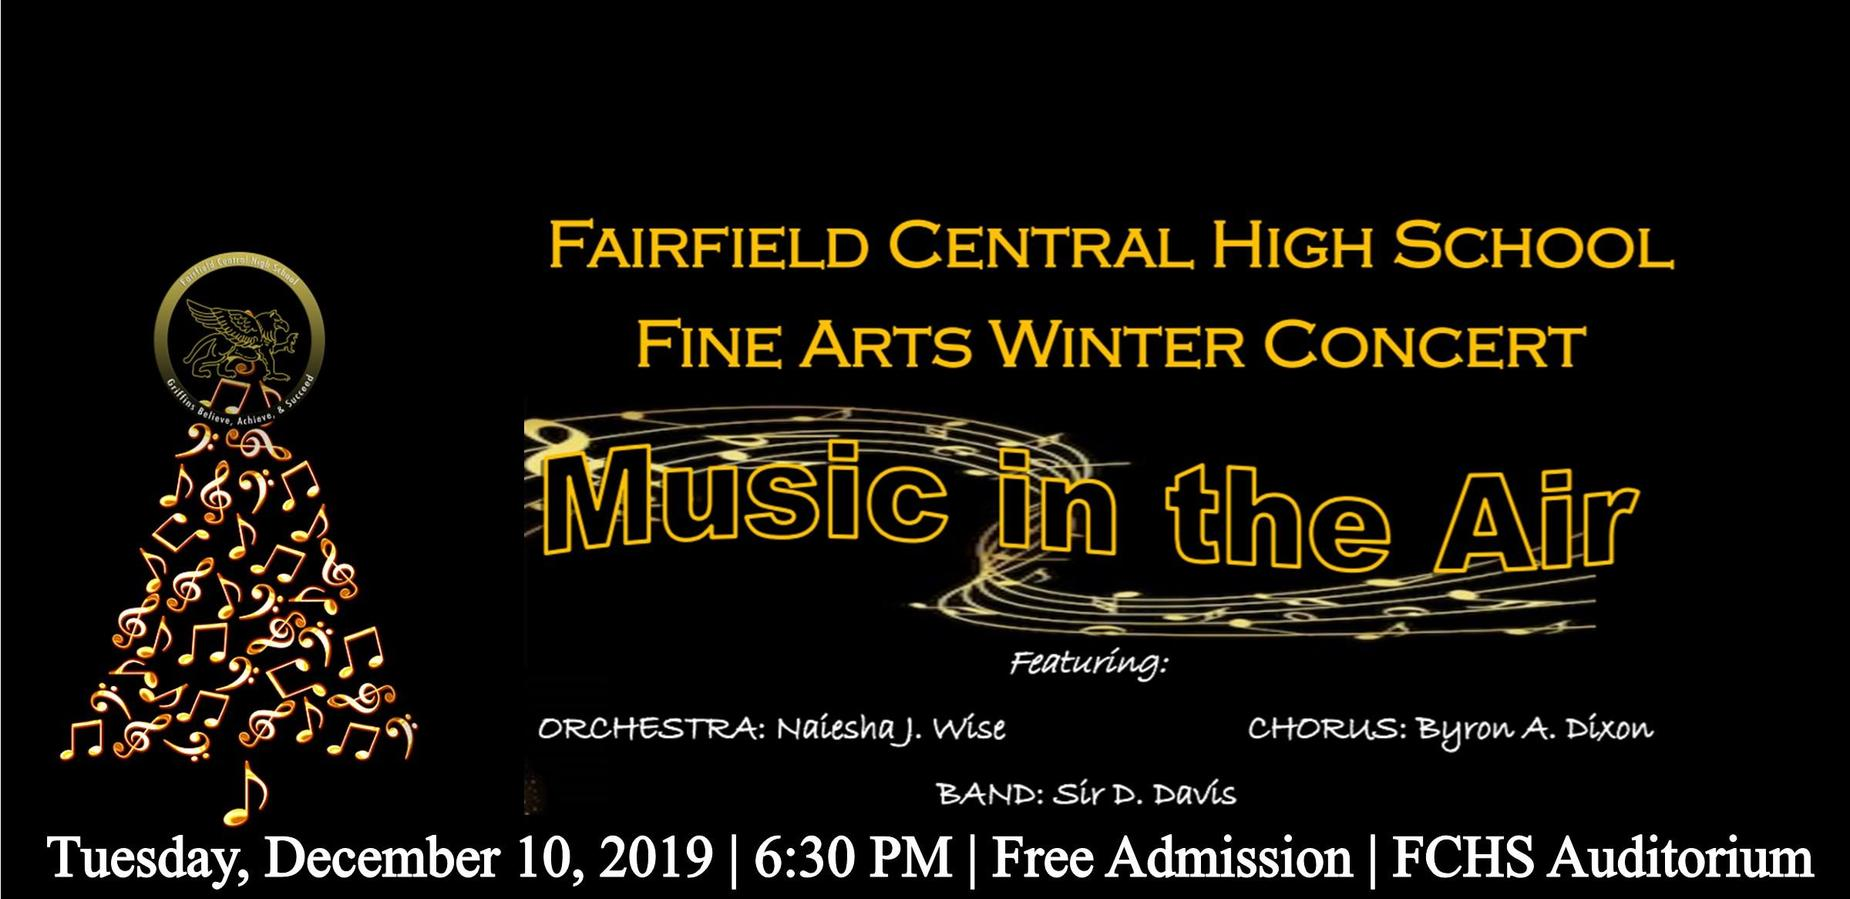 FCHS Fine Arts Winter Concert Music in the Air Featuring: Orchestra-Naiesha J. Wise, Chorus-Byron A. Dixon, Band- Sir D. Davis. Tuesday, December 10, 2019 | 6:30 PM | Free Admission | FCHS Auditorium